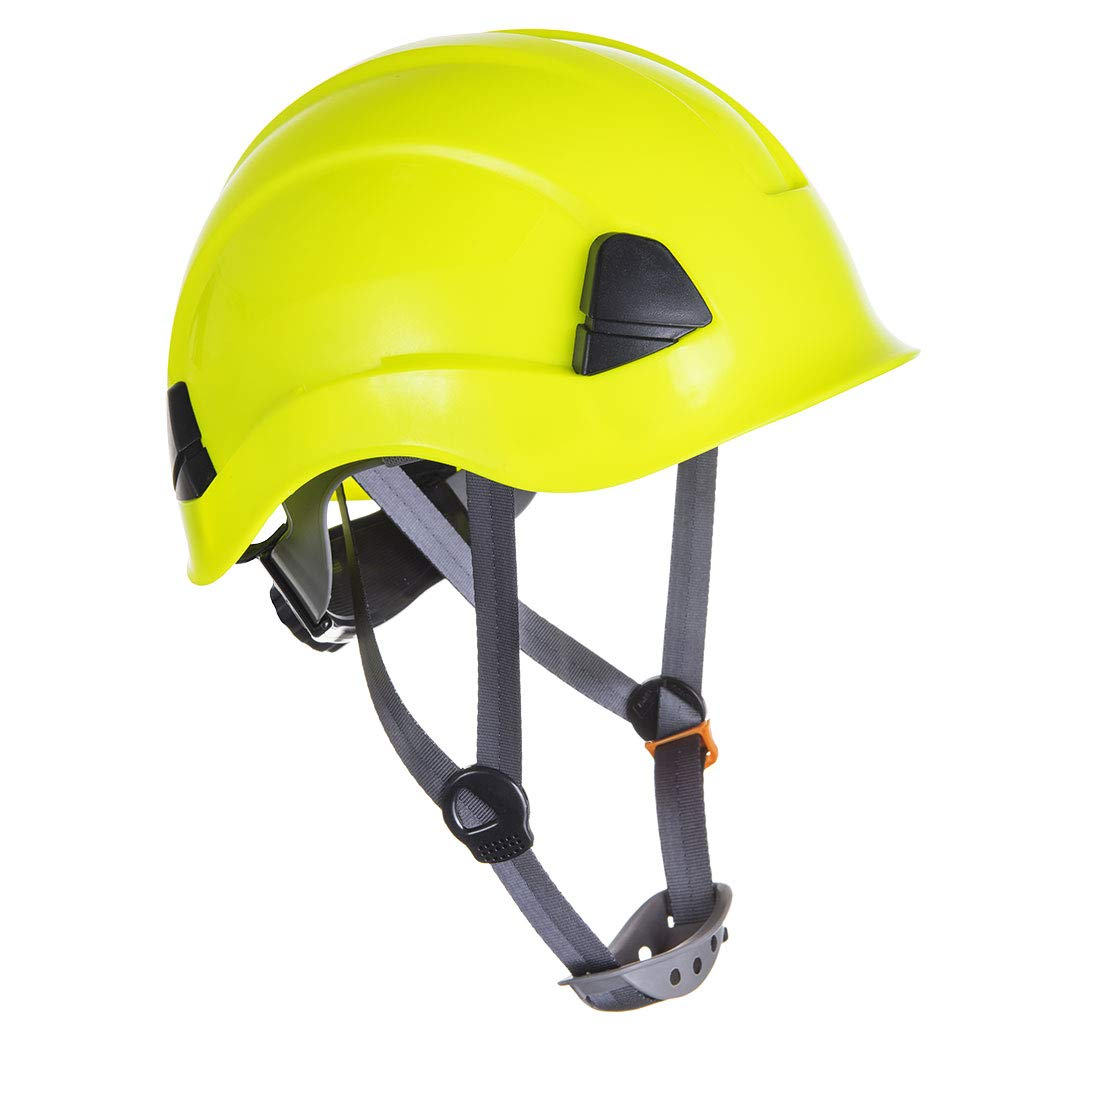 Portwest PS53 Height Endurance PPE Work Hard Hat in Protective HiVis Colors ANSI, Yellow by Portwest